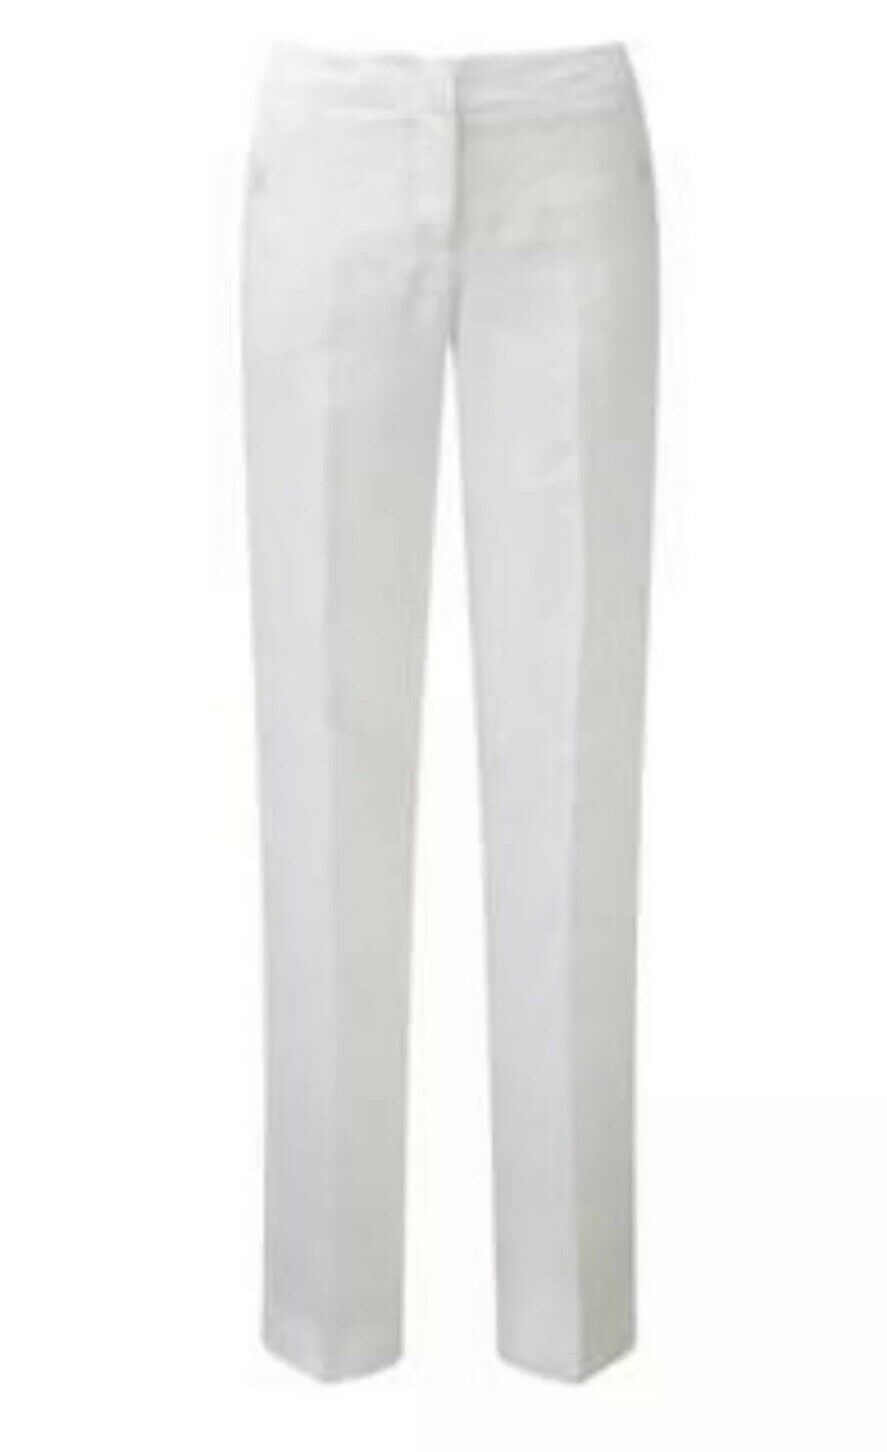 Fabiana Filippi Taupe White Trousers - Size 16 - New without tags - RRP .